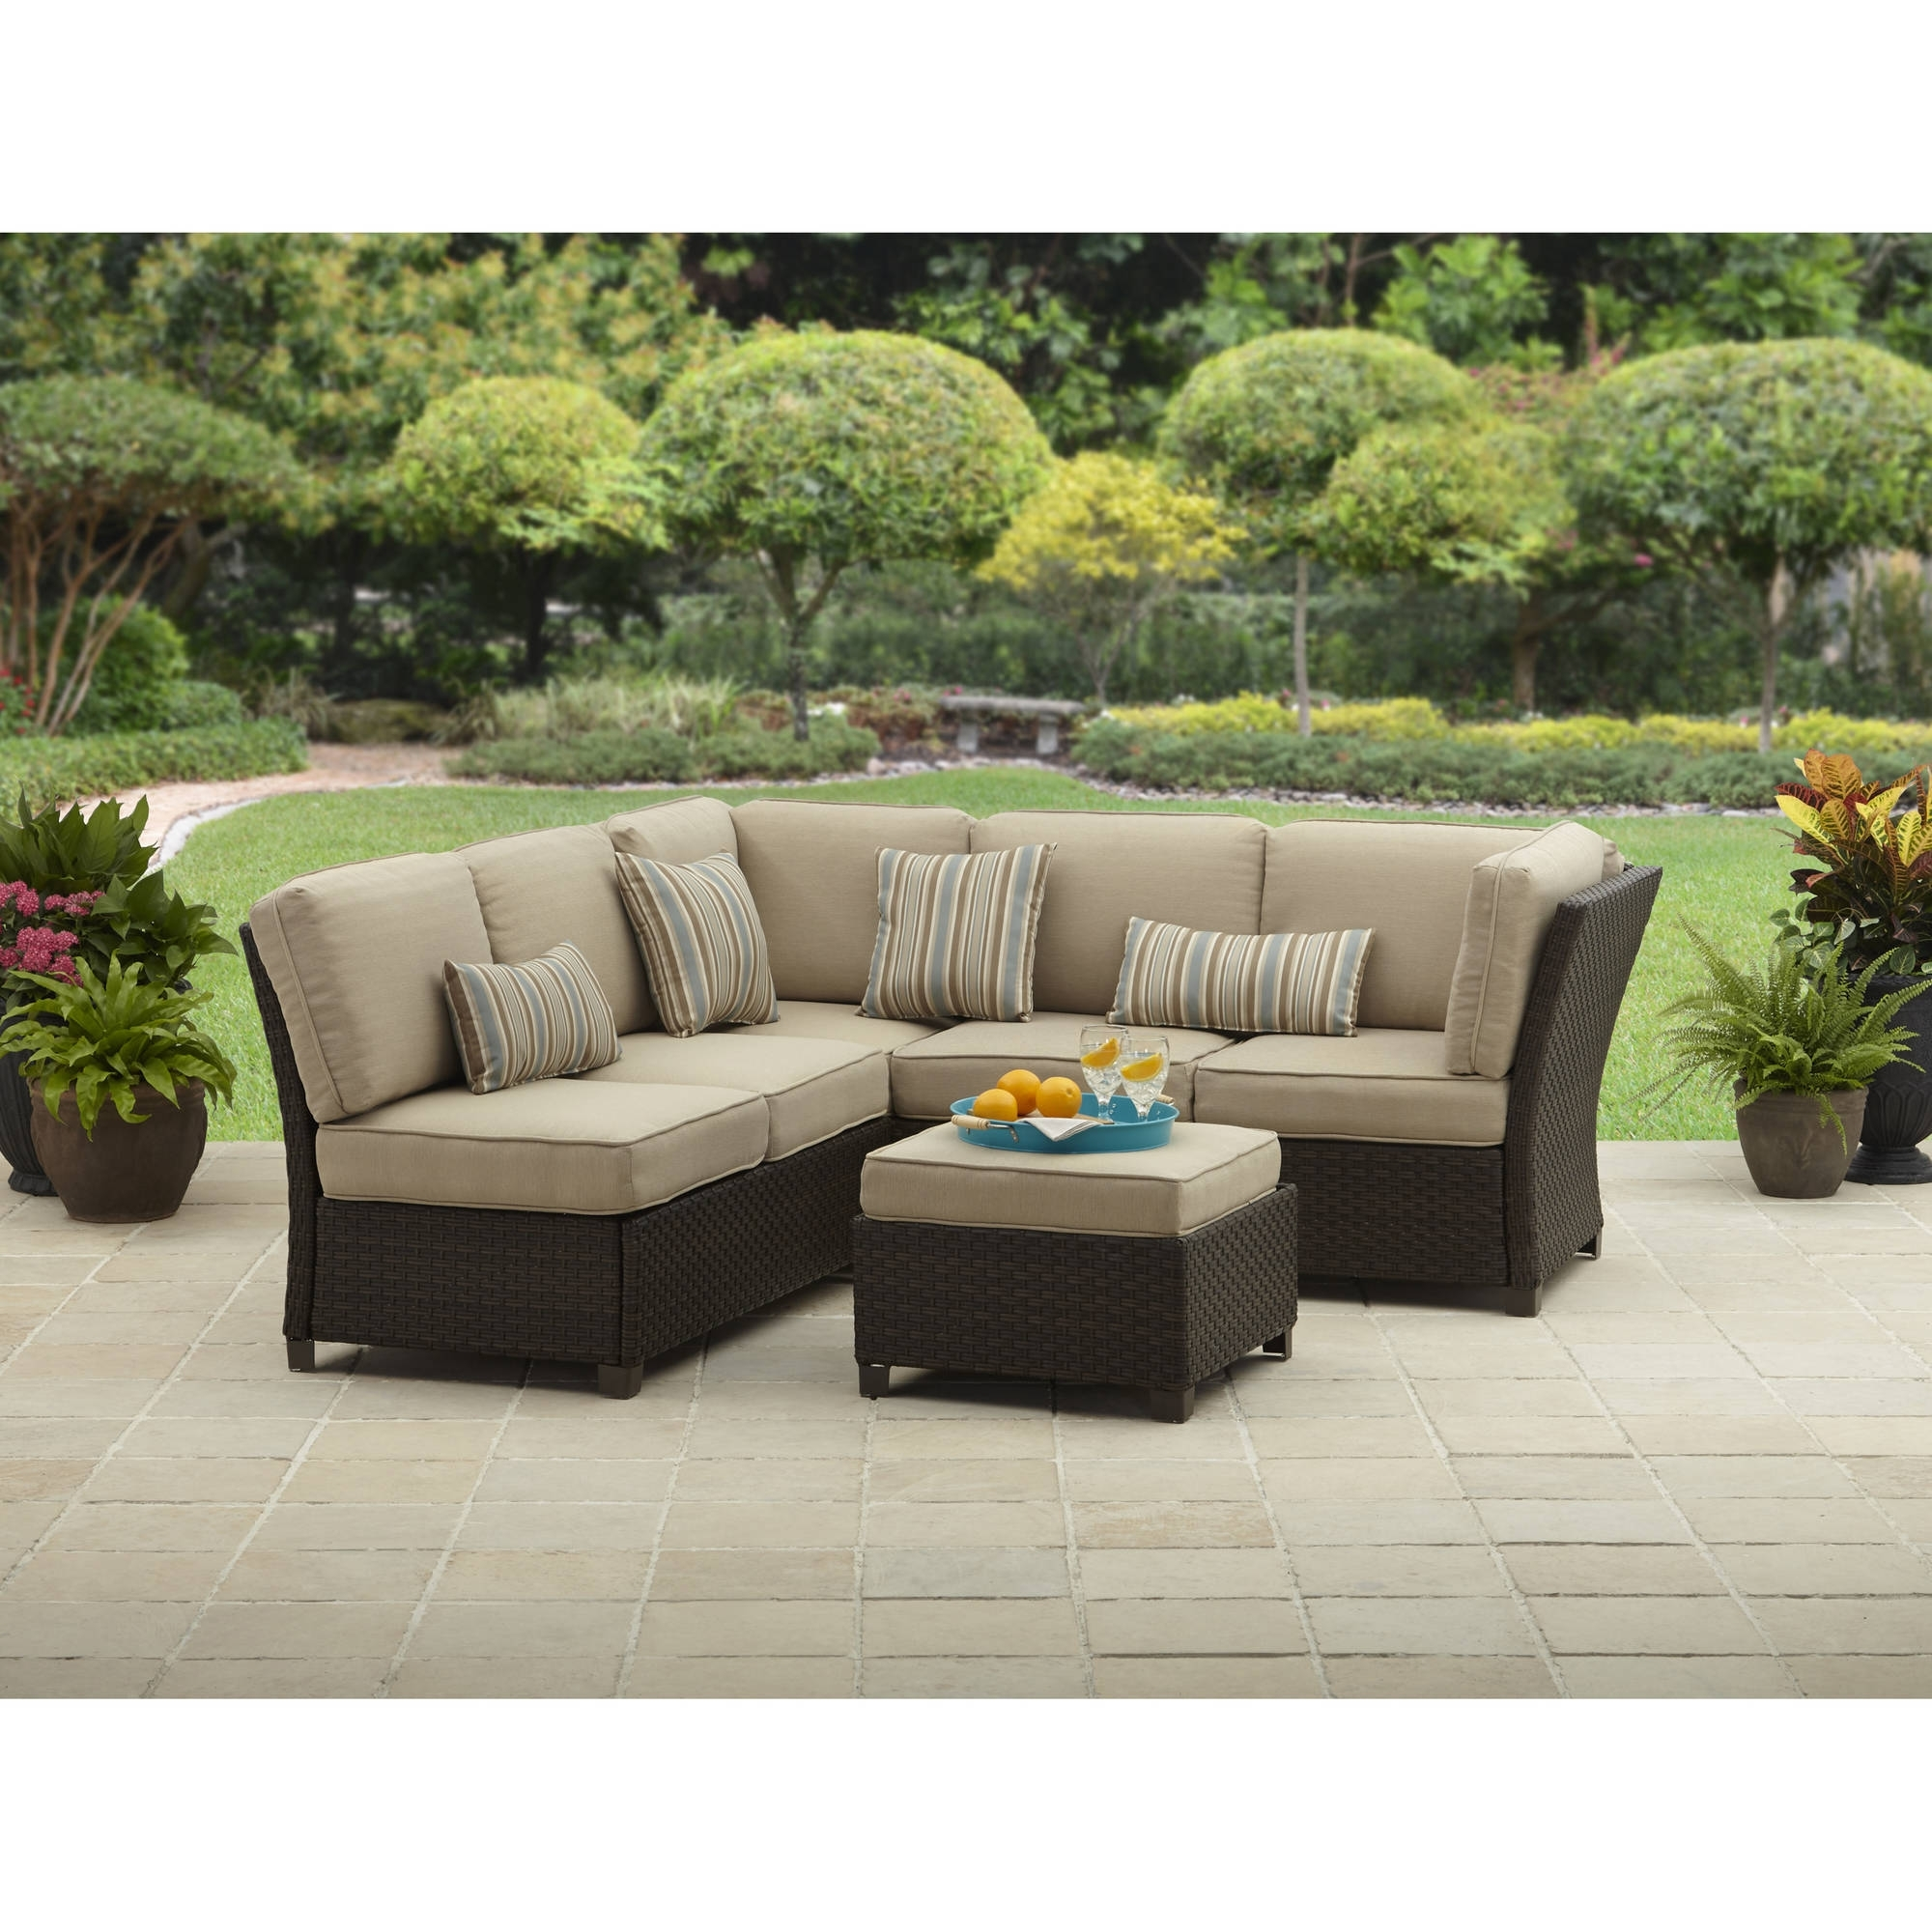 Fashionable Better Homes And Gardens Cadence Wicker Outdoor Sectional Sofa Set With Regard To Sams Club Sectional Sofas (View 5 of 20)